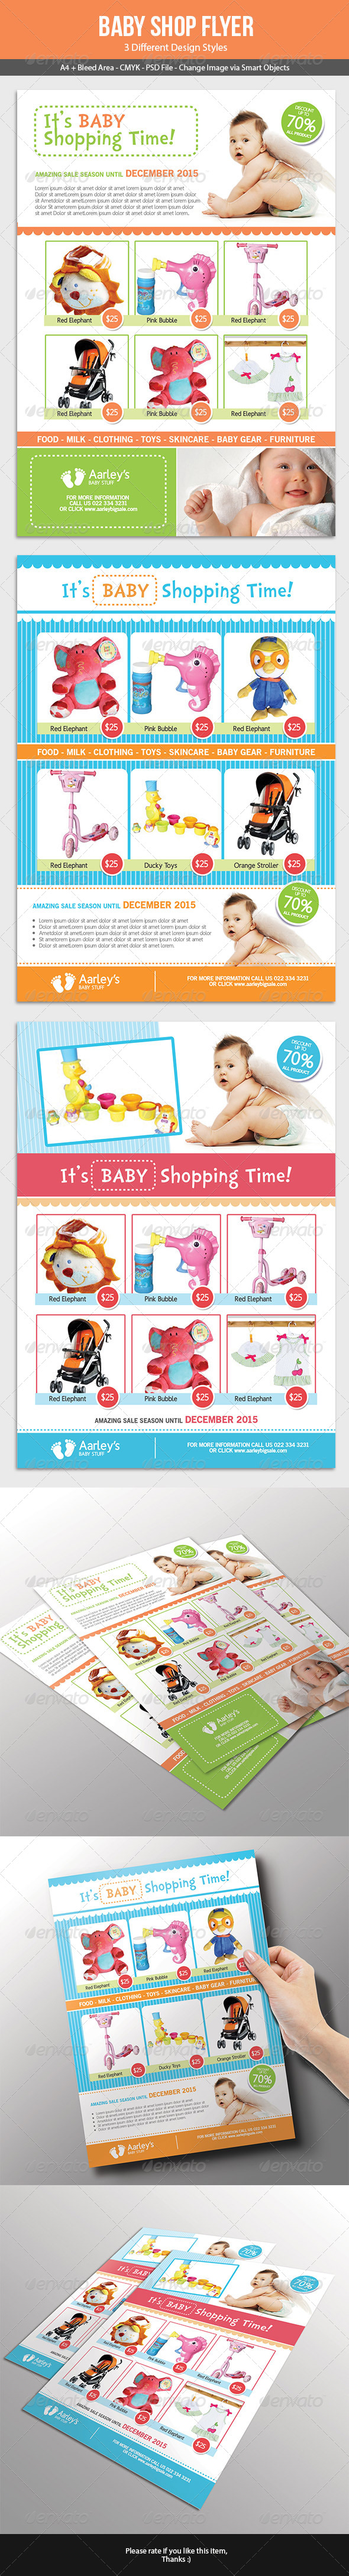 Baby Shop Flyer - Commerce Flyers